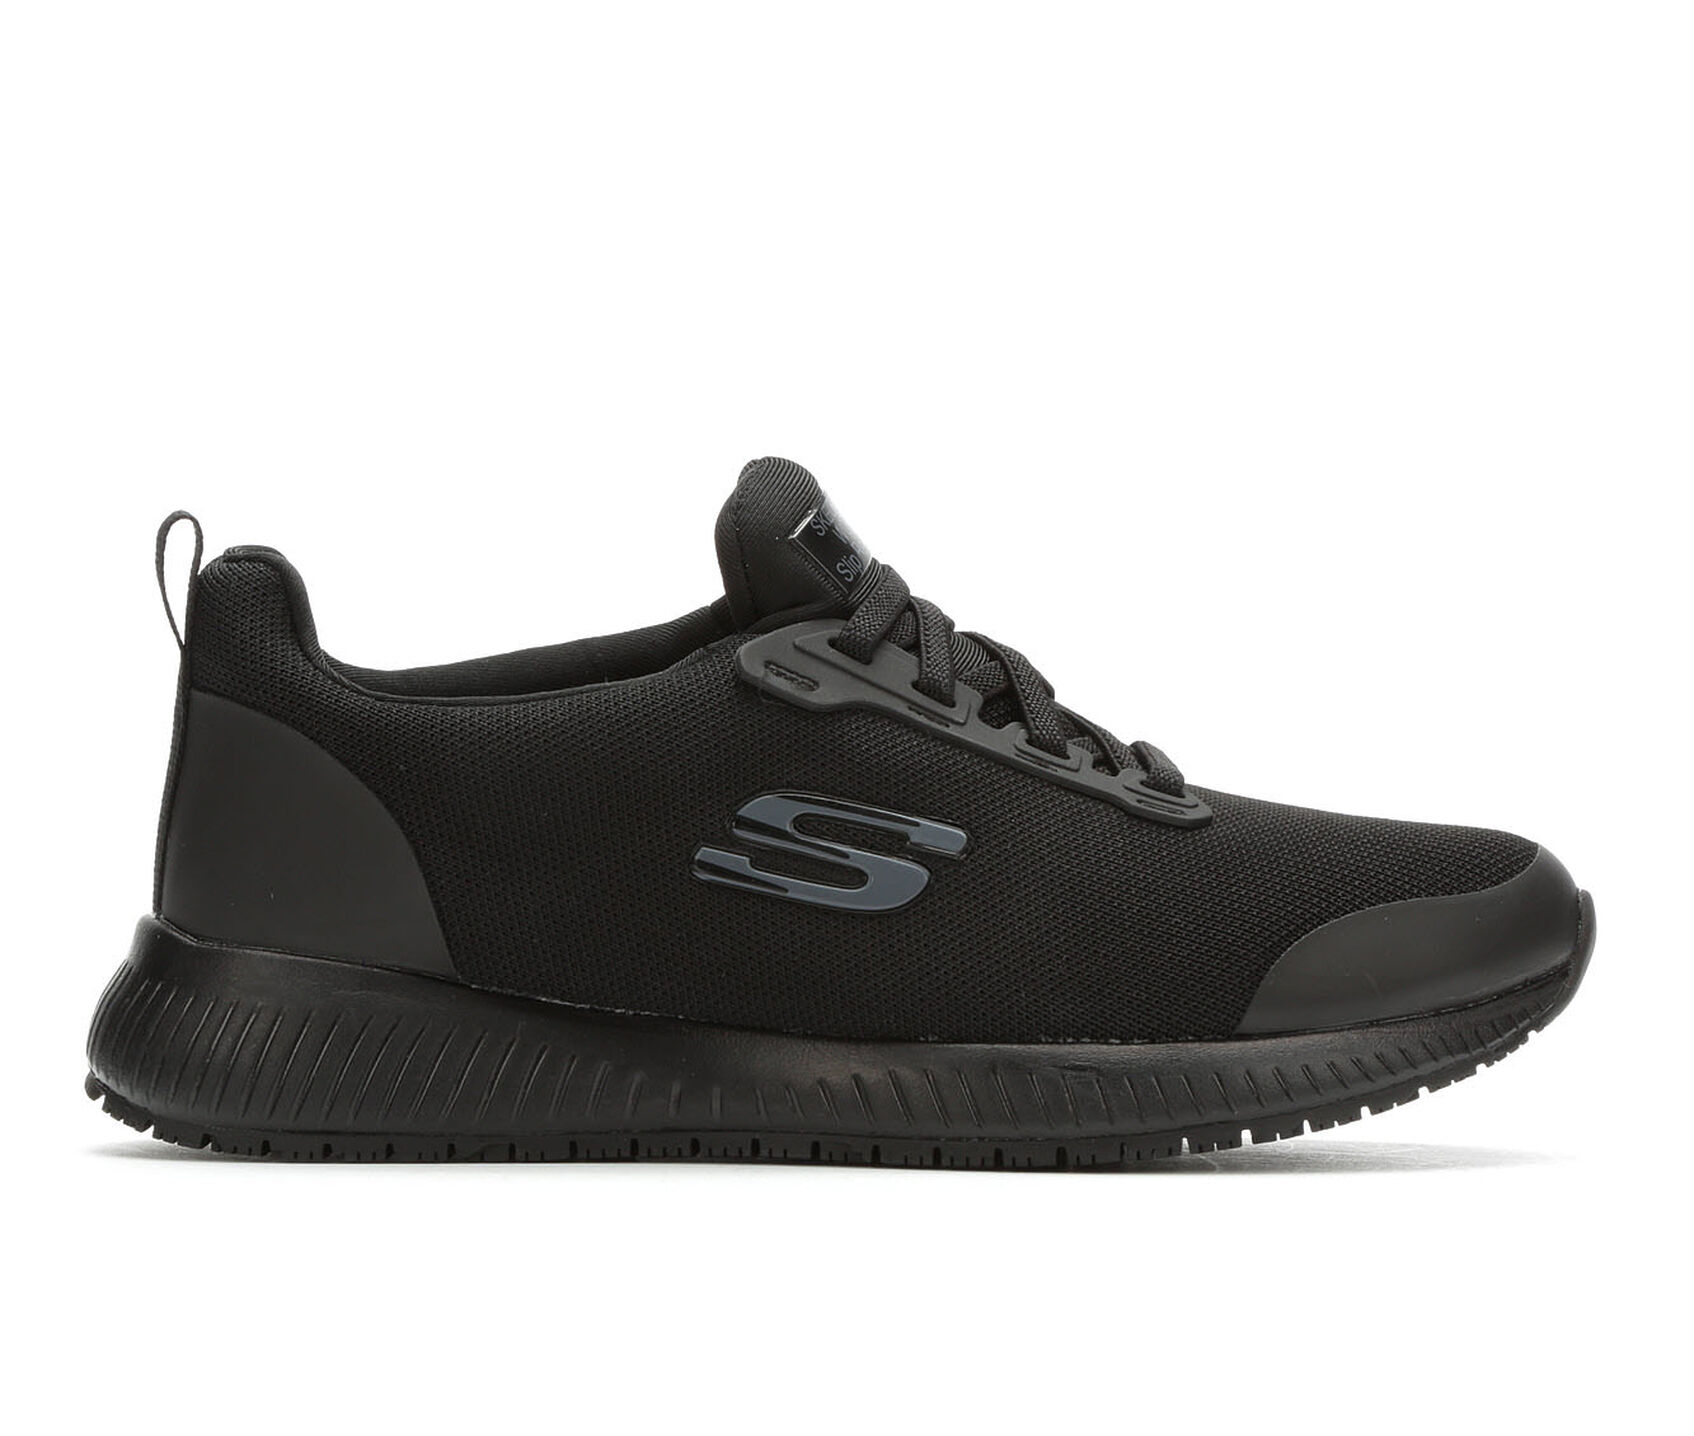 skechers pull on shoes